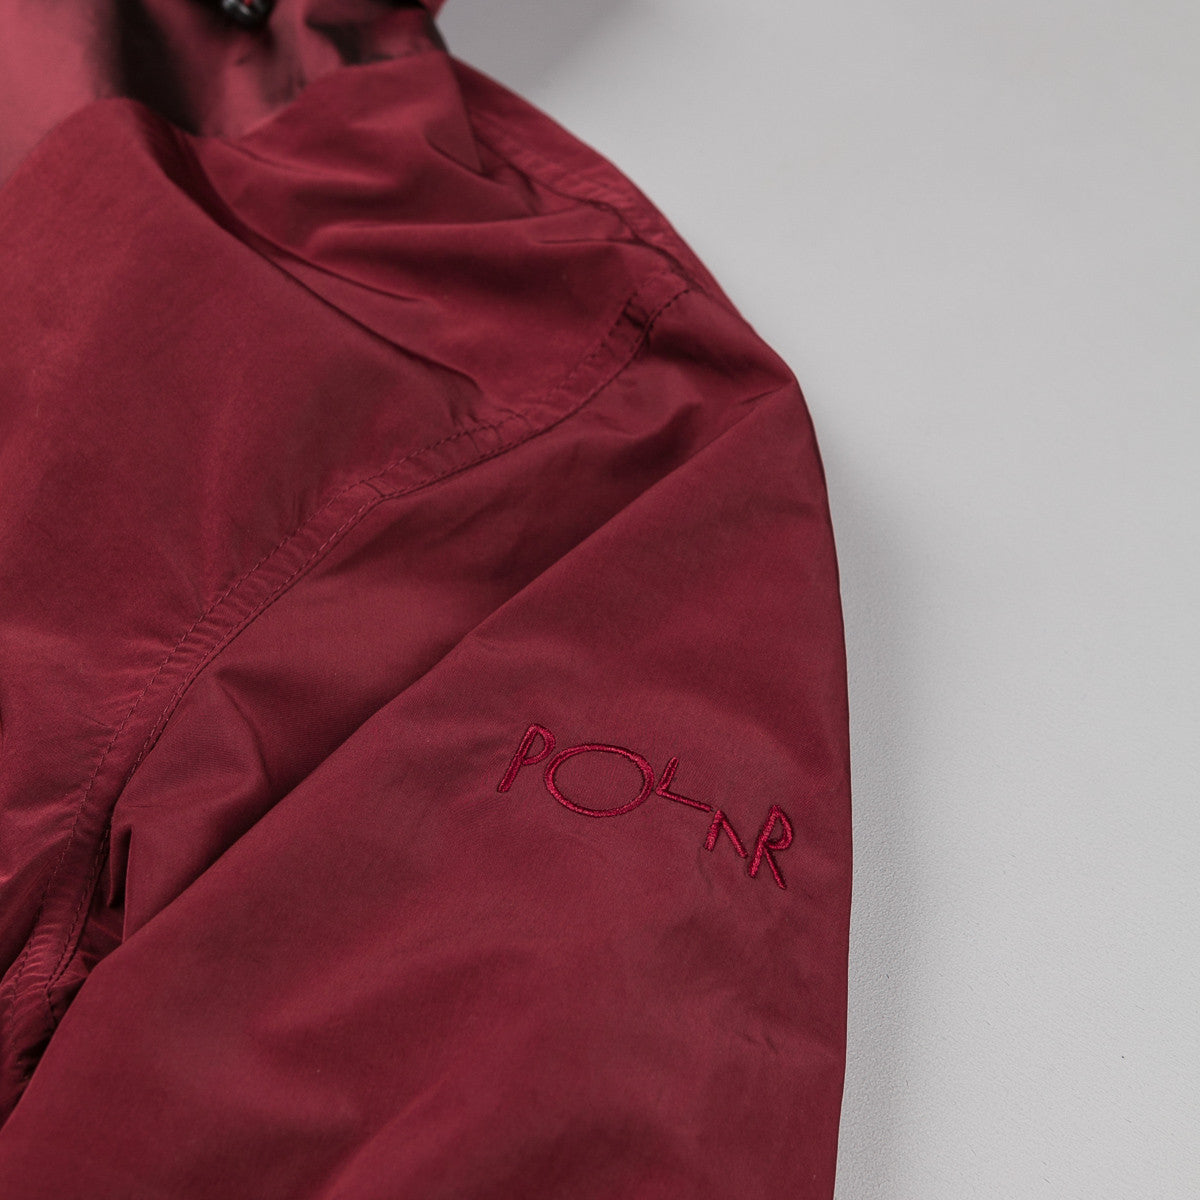 Polar Golf Club Pullover 2.0 Jacket - Burgundy